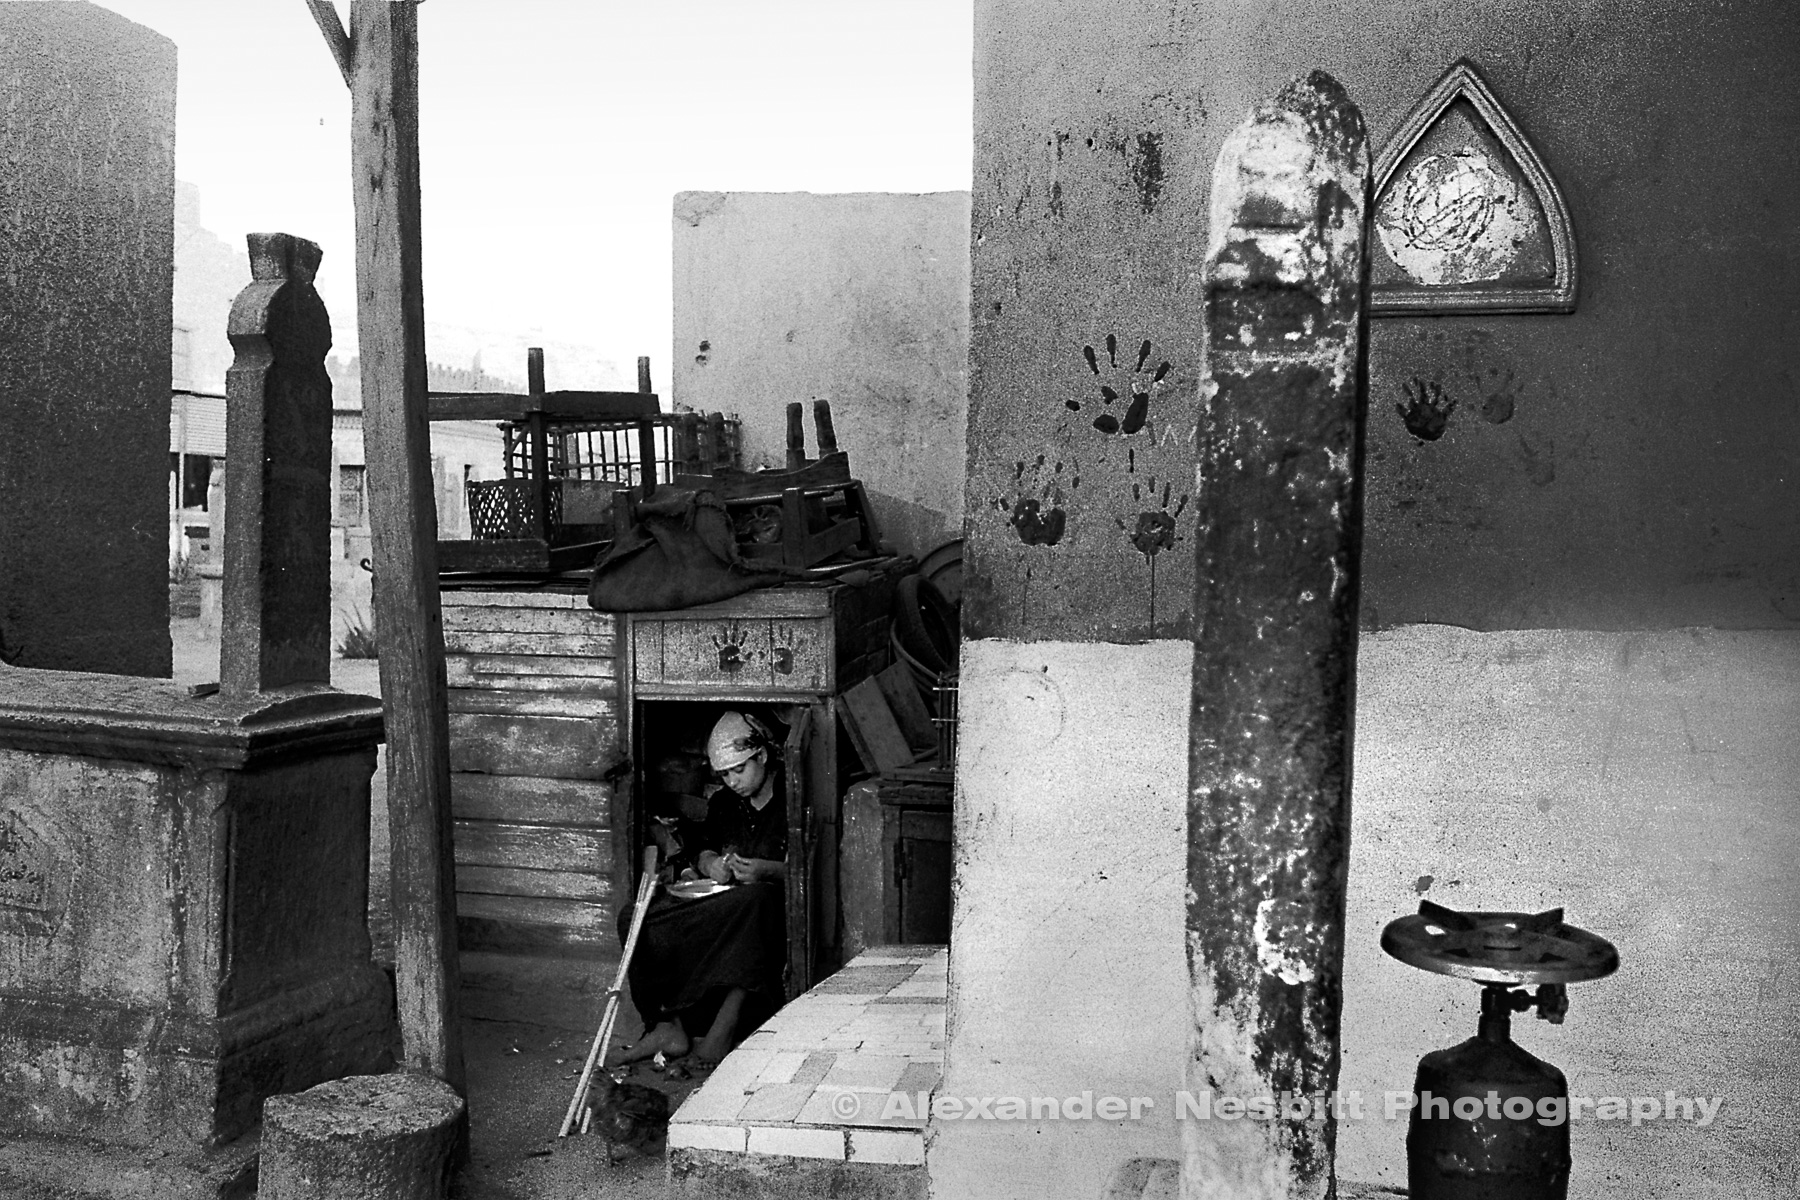 City of the Dead, Cairo  - Girl working in a make shift kitchen locker in her family compound among the grave markers.